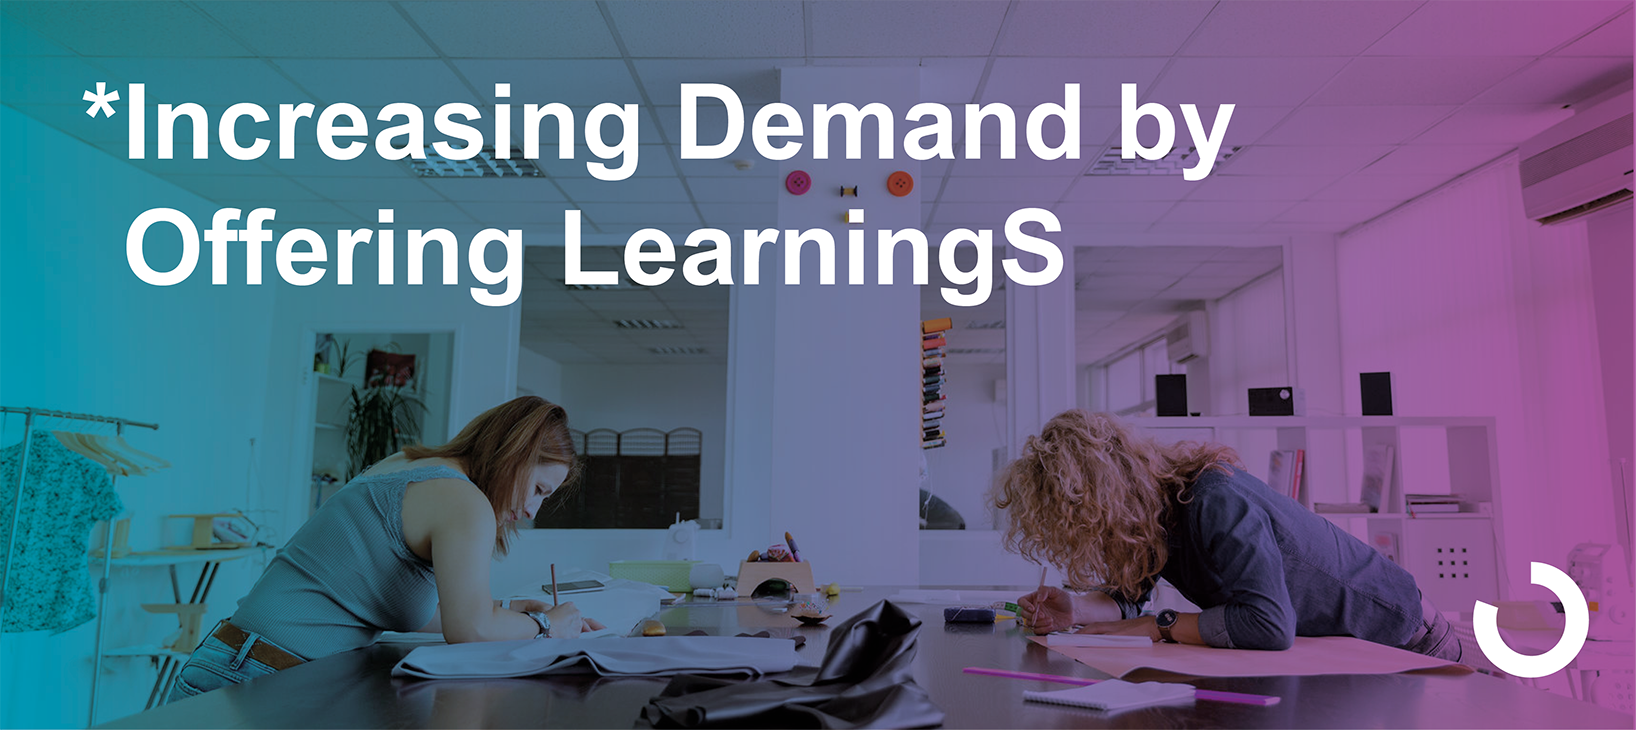 Increasing demand by offering learnings